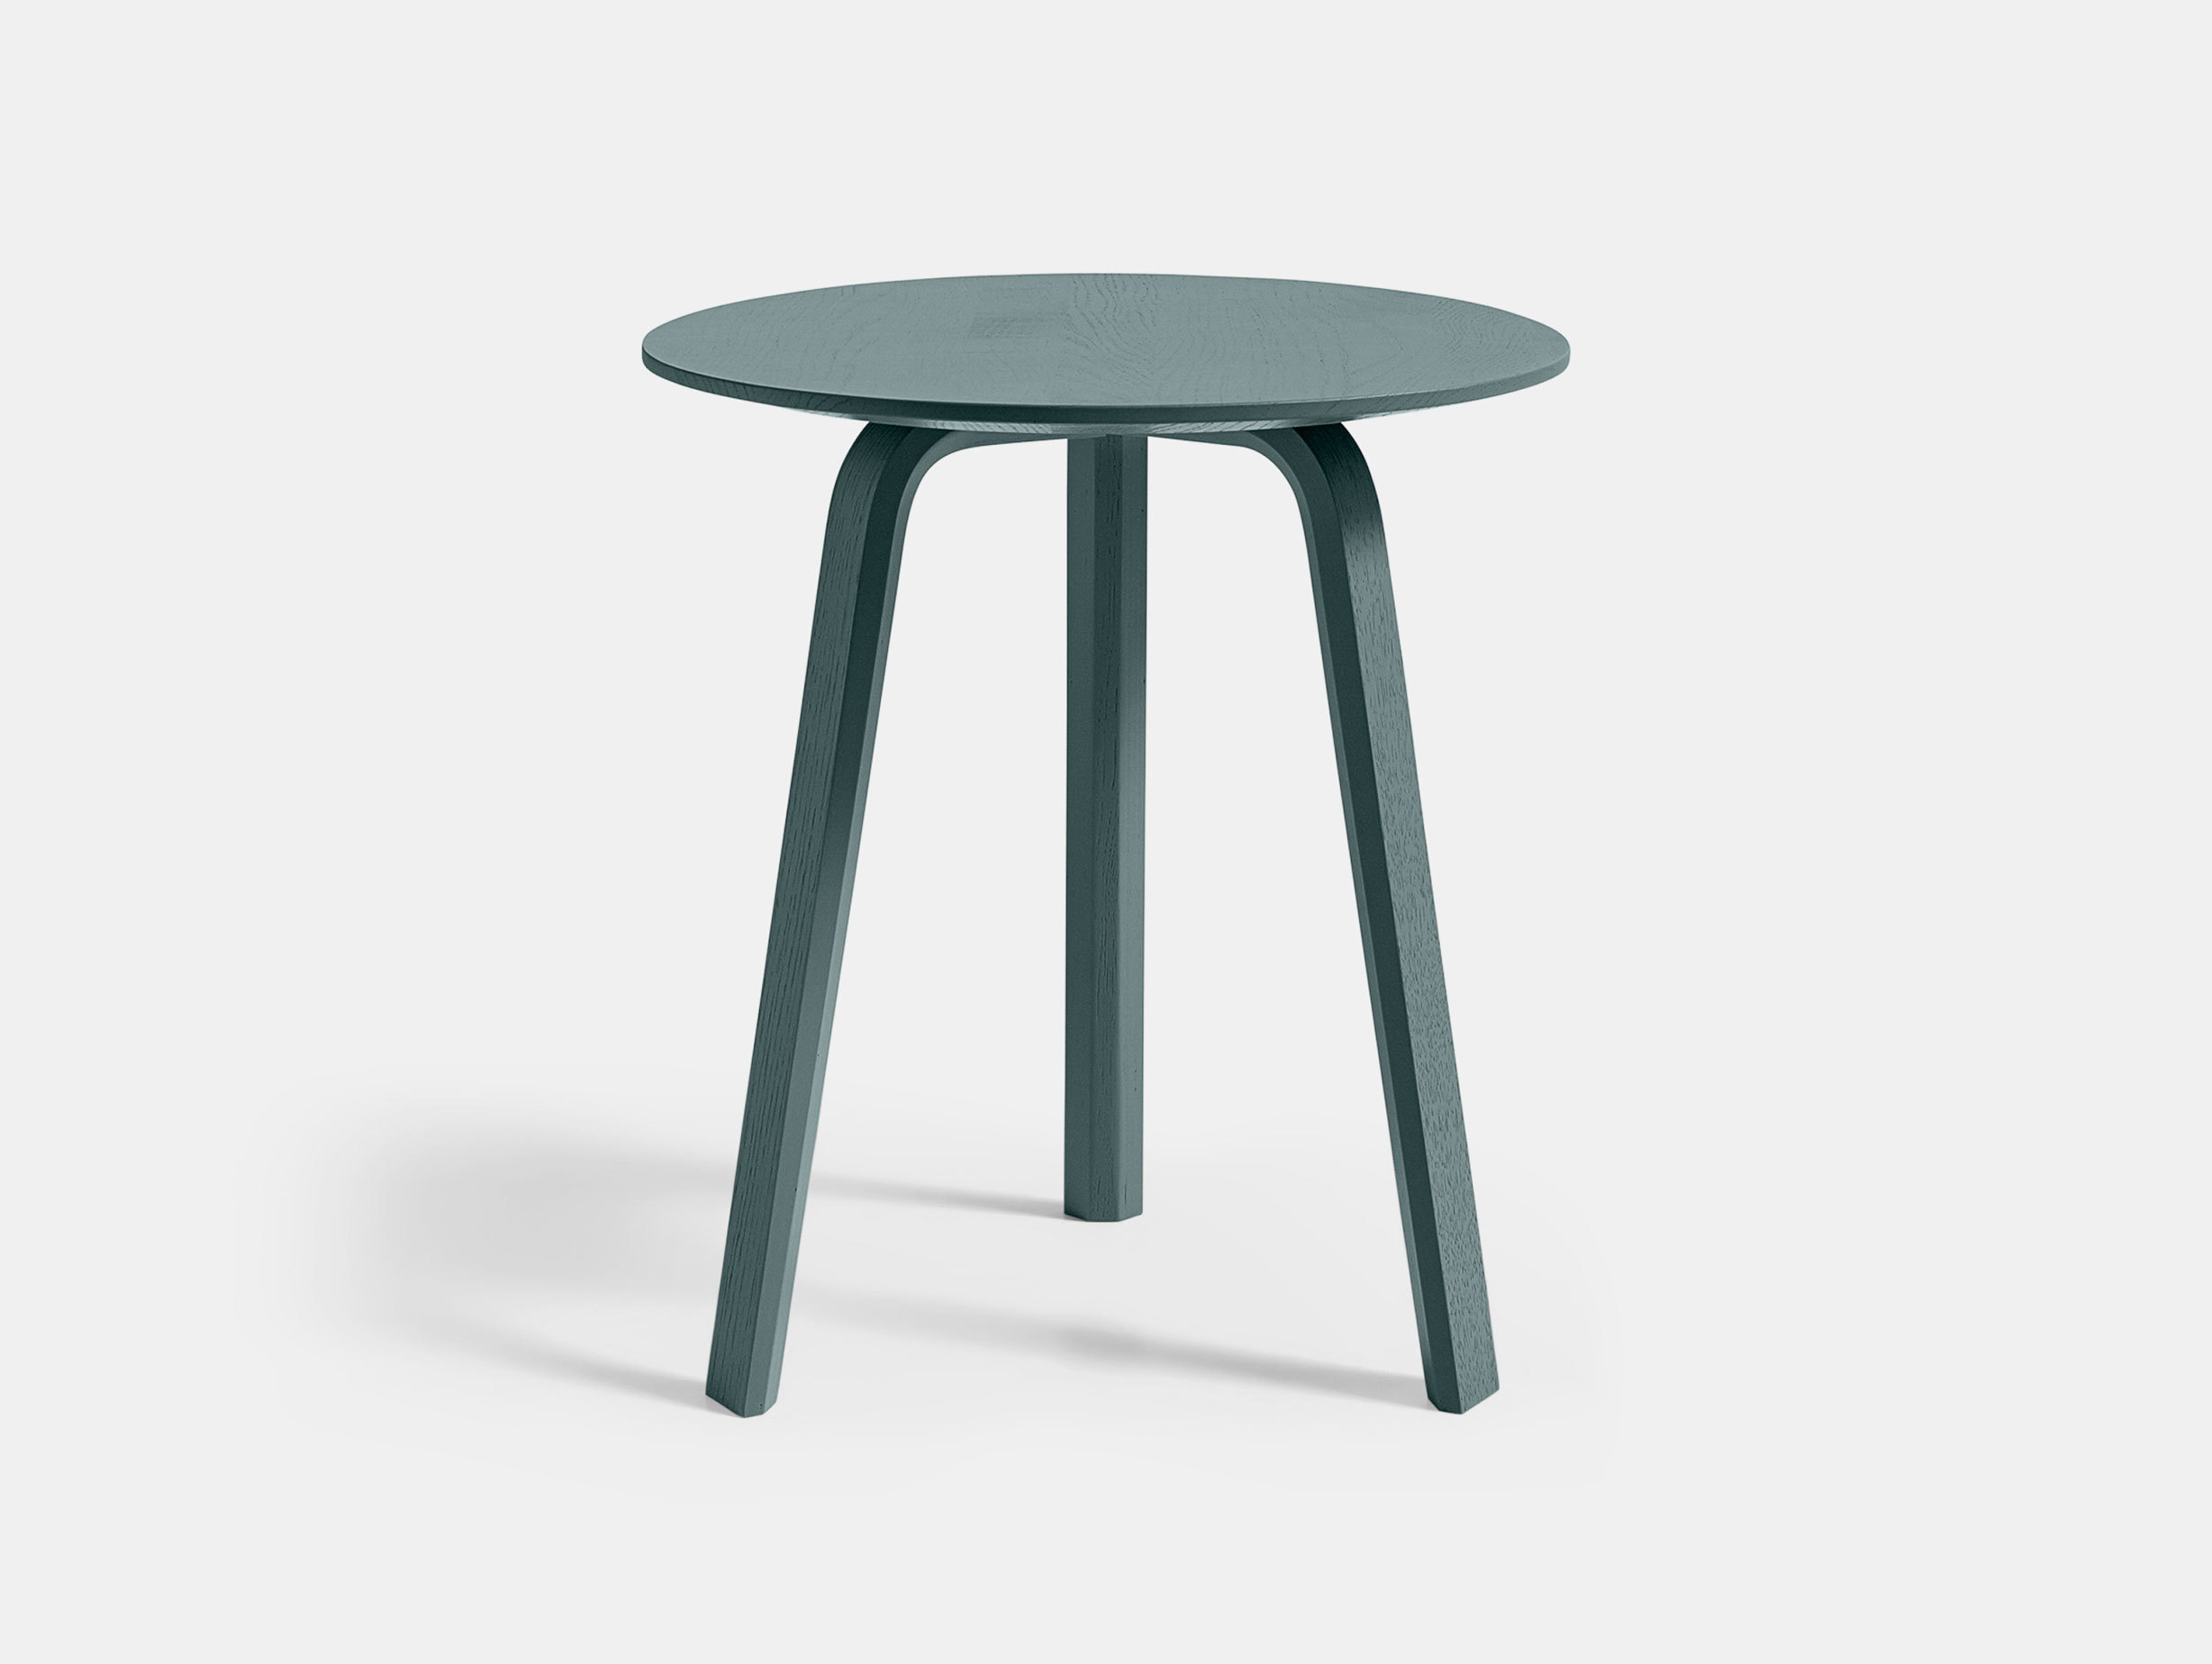 Bella Coffee Table Dia.45 x H.49 cm. | Viaduct